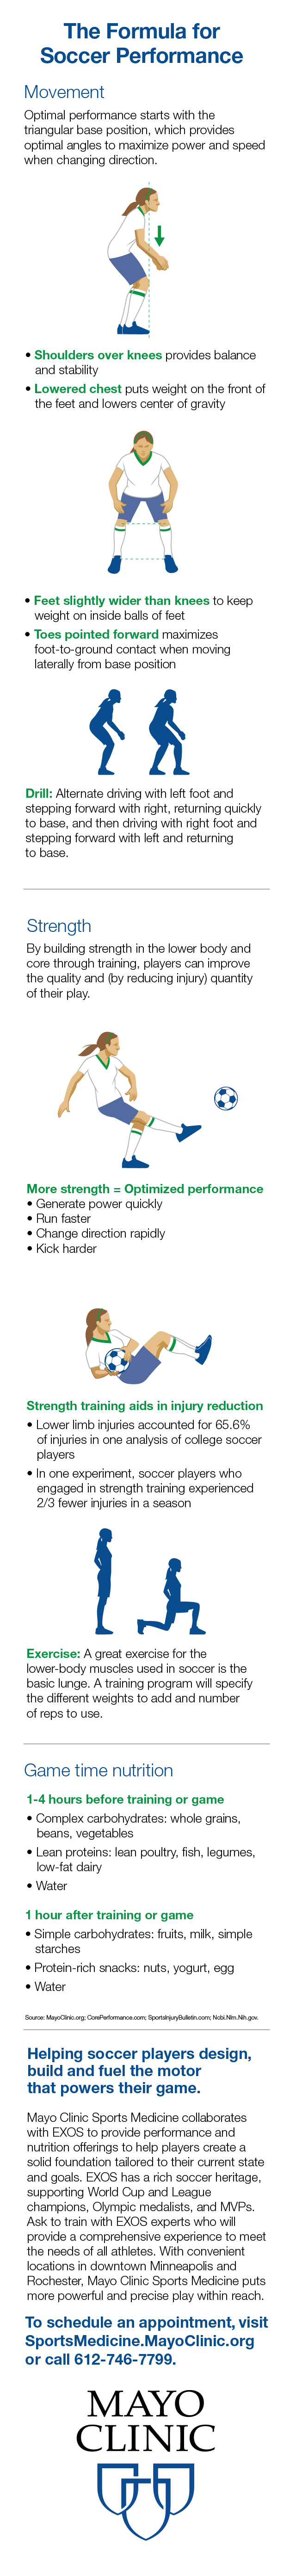 Infographic for soccer performance